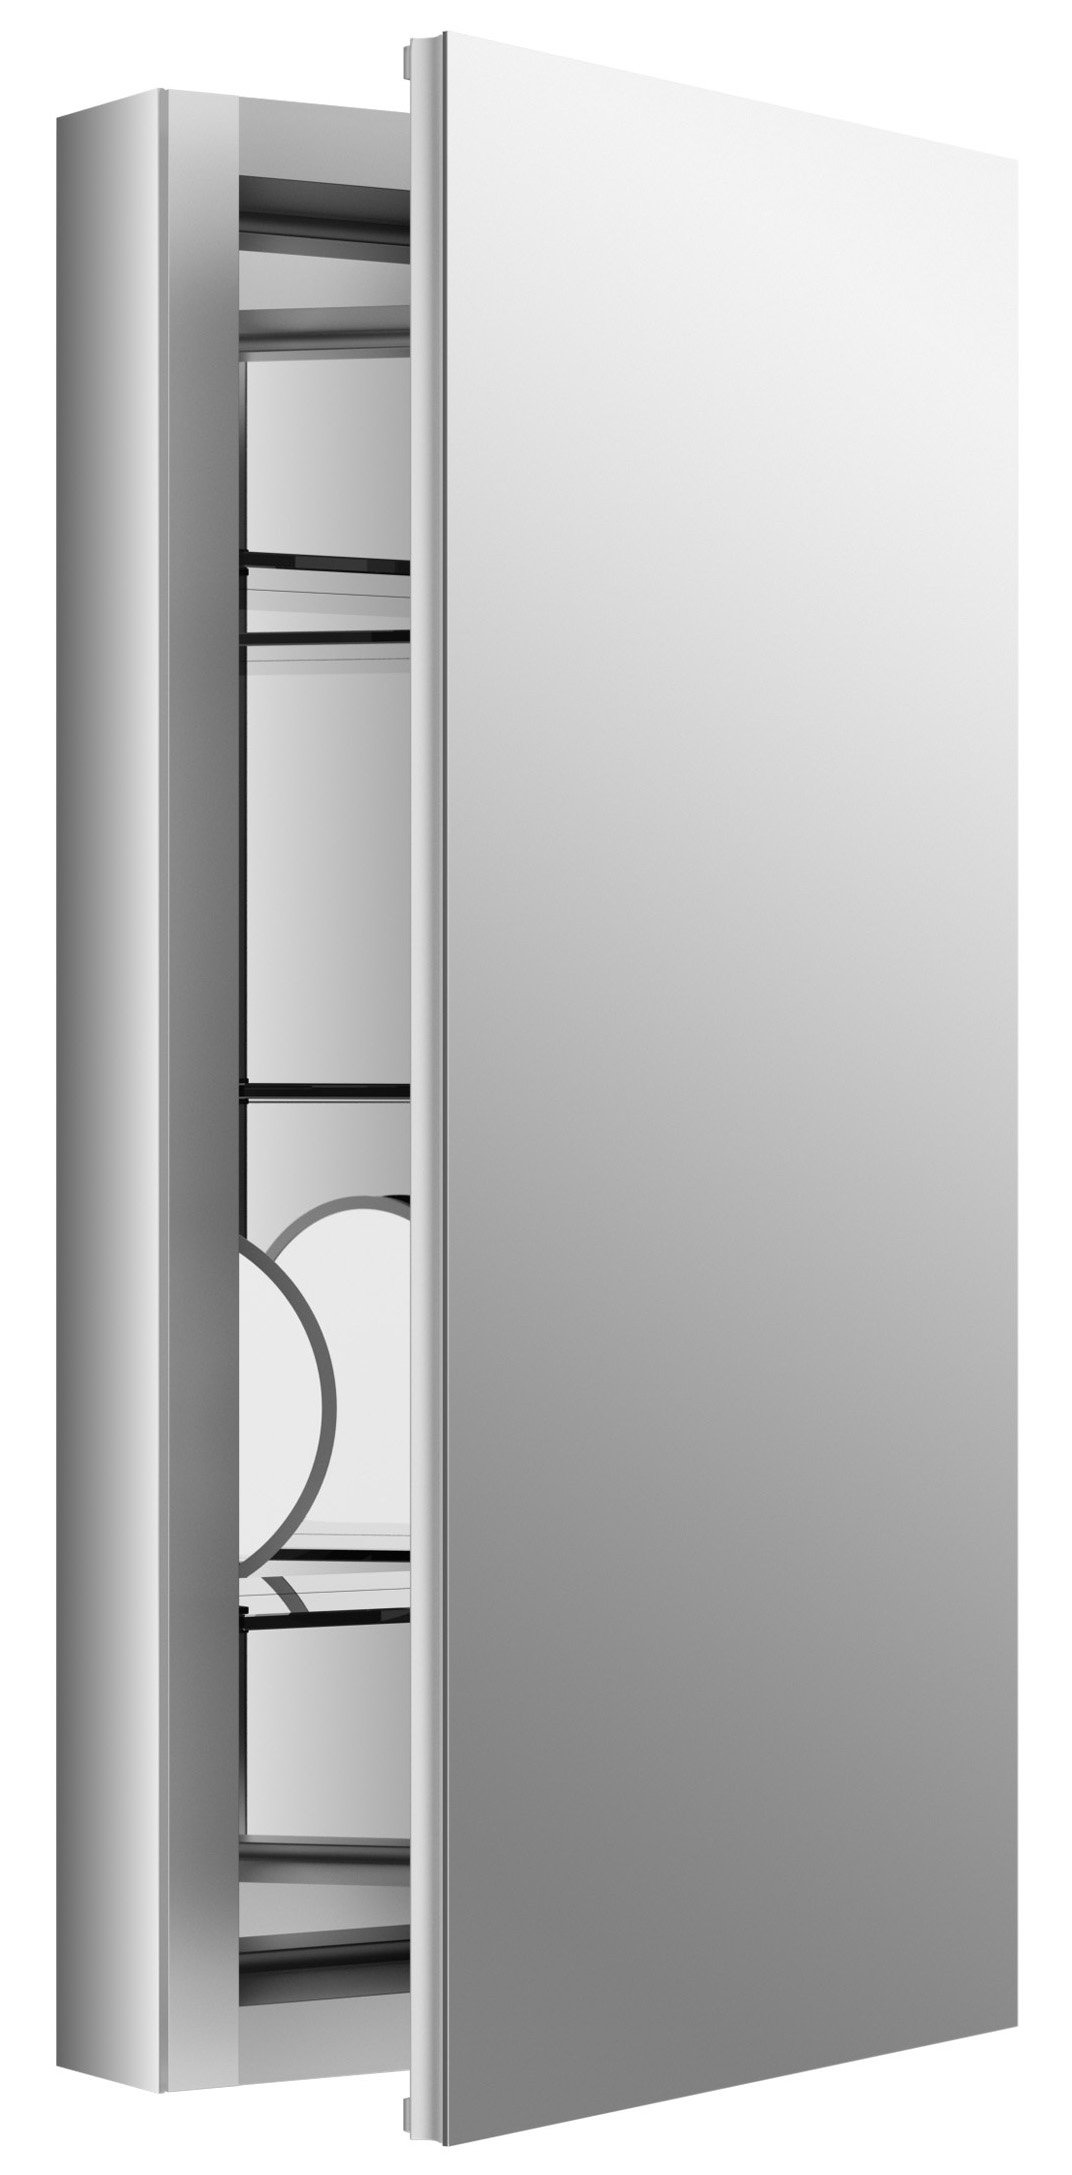 KOHLER K-99001-NA Verdera 15-Inch By 30-Inch Slow-Close Medicine Cabinet With Magnifying Mirror